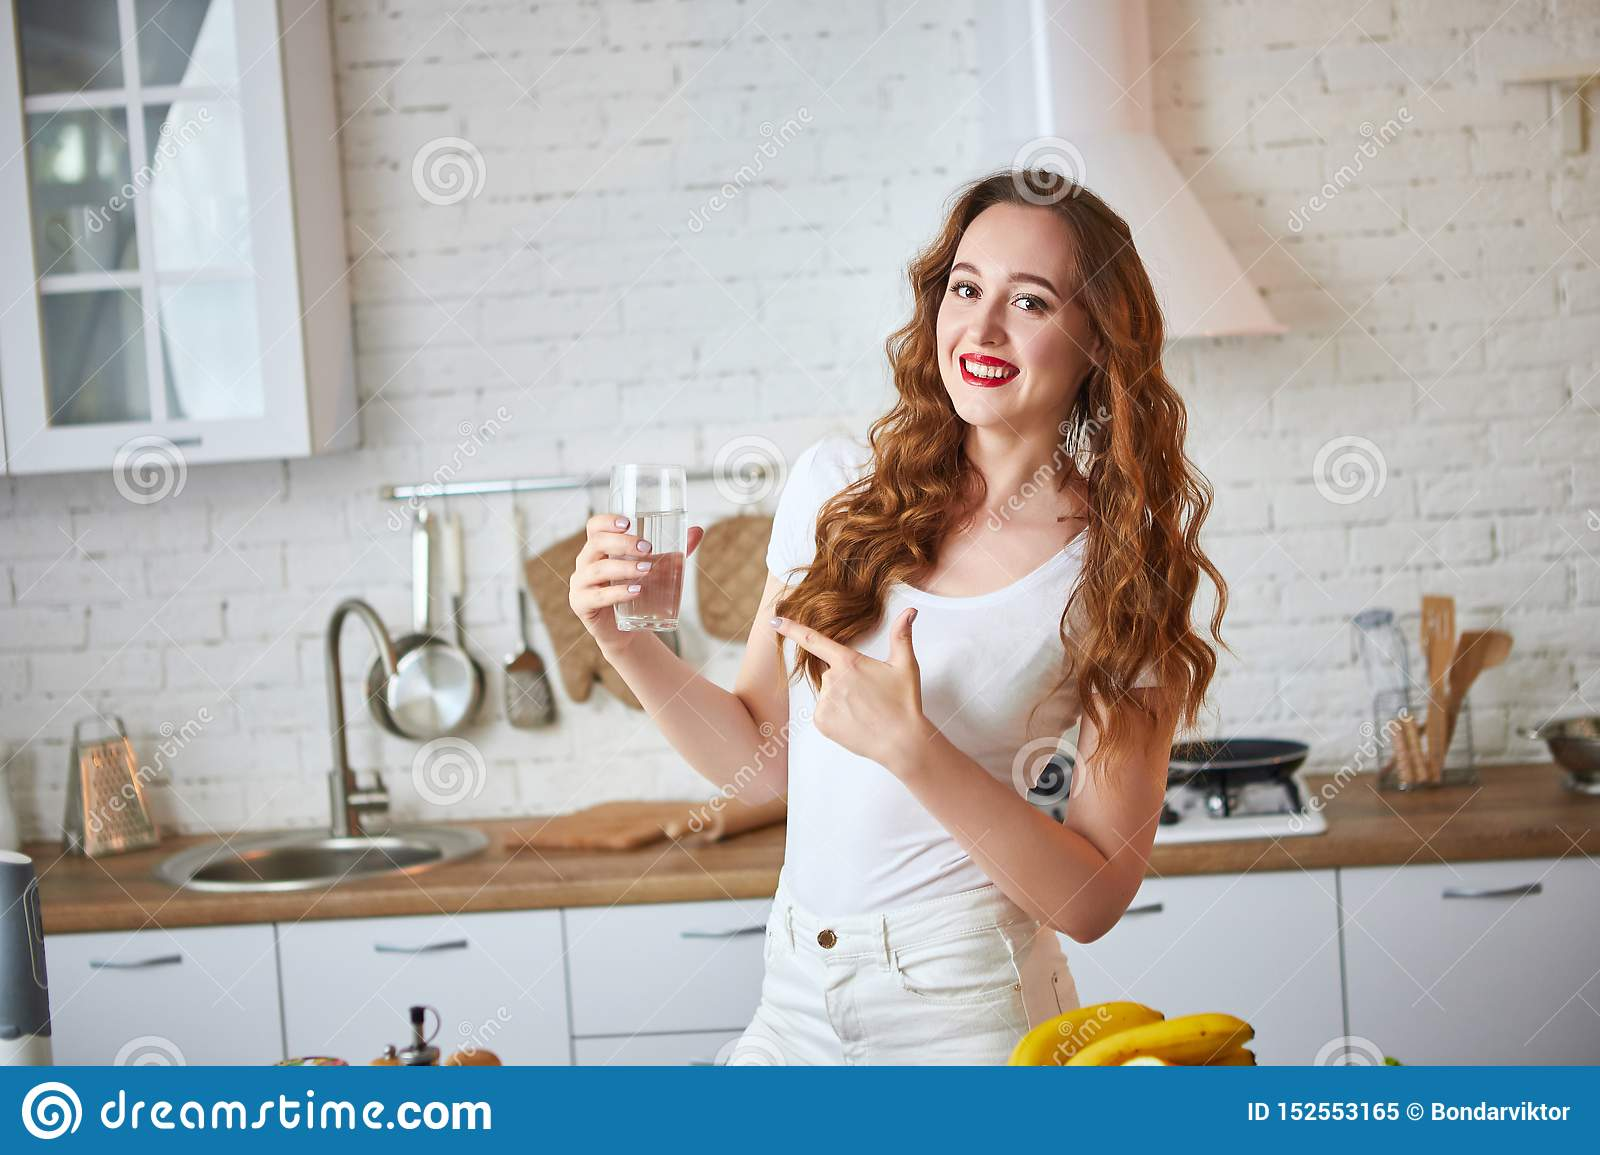 Young woman drinking fresh water from glass in the kitchen. Healthy Lifestyle and Eating. Health, Beauty, Diet Concept